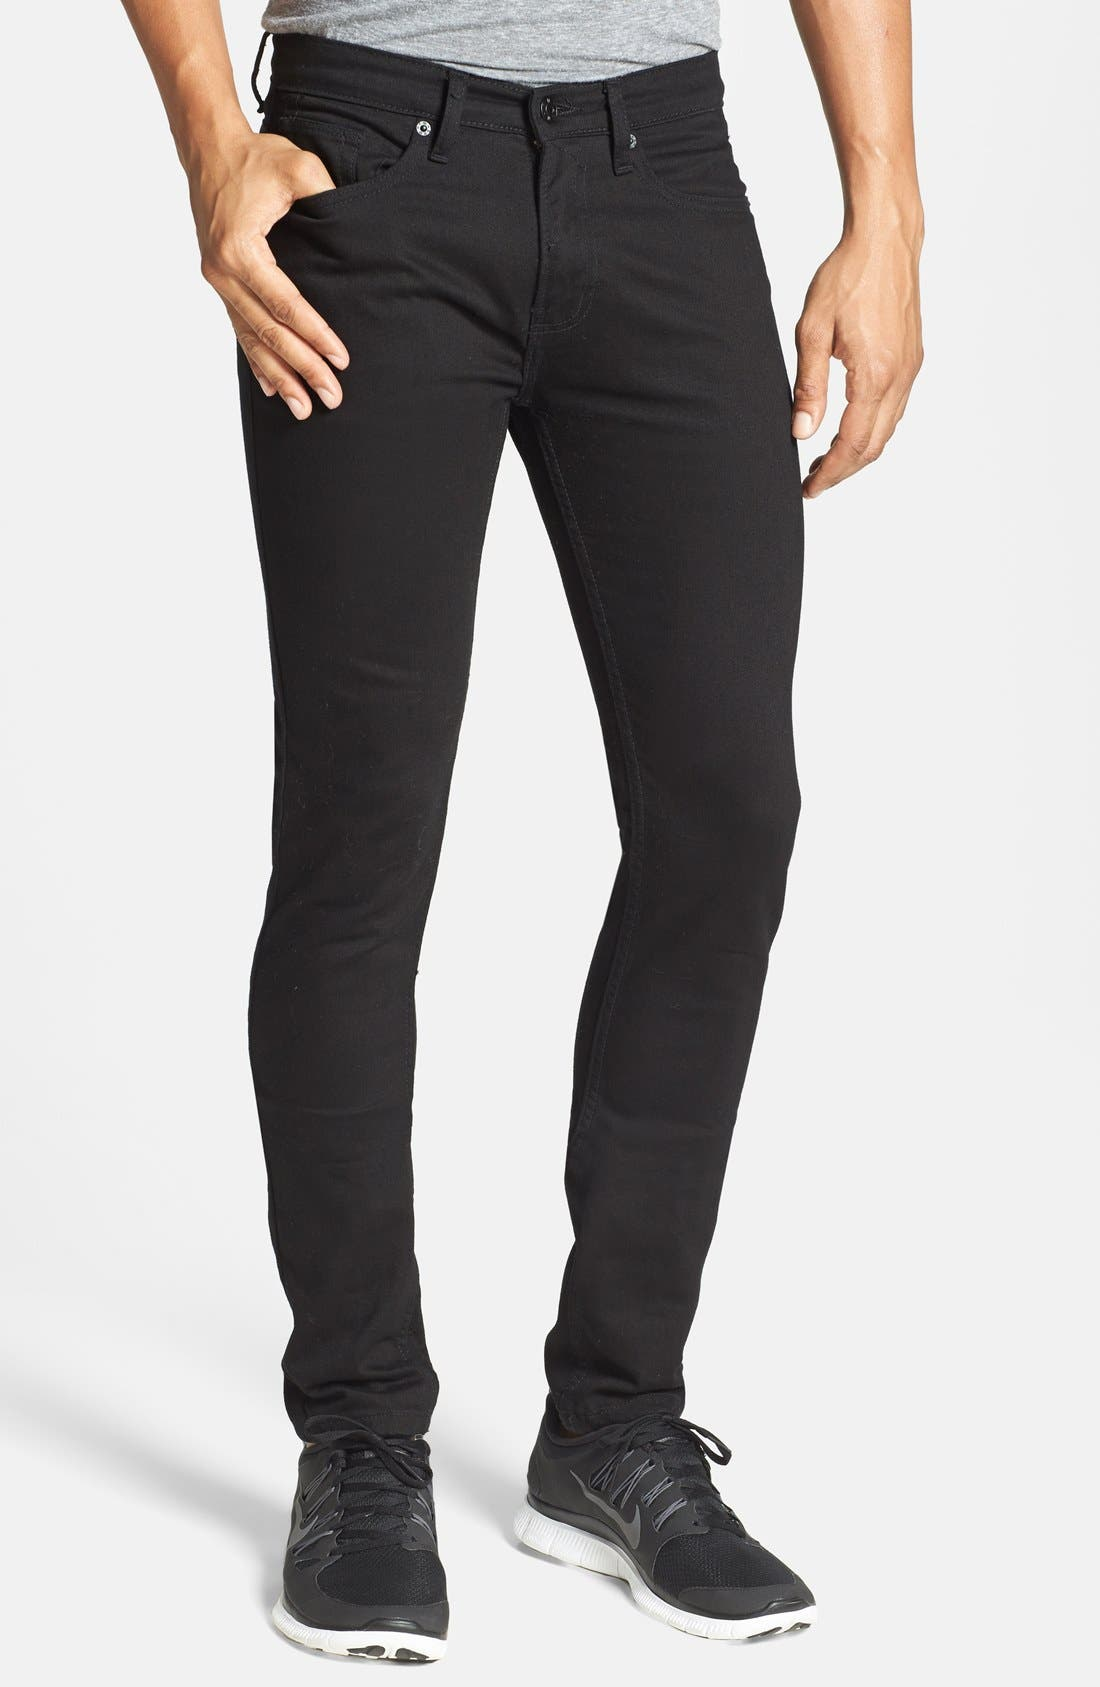 TOPMAN, Stretch Skinny Fit Jeans, Main thumbnail 1, color, 001